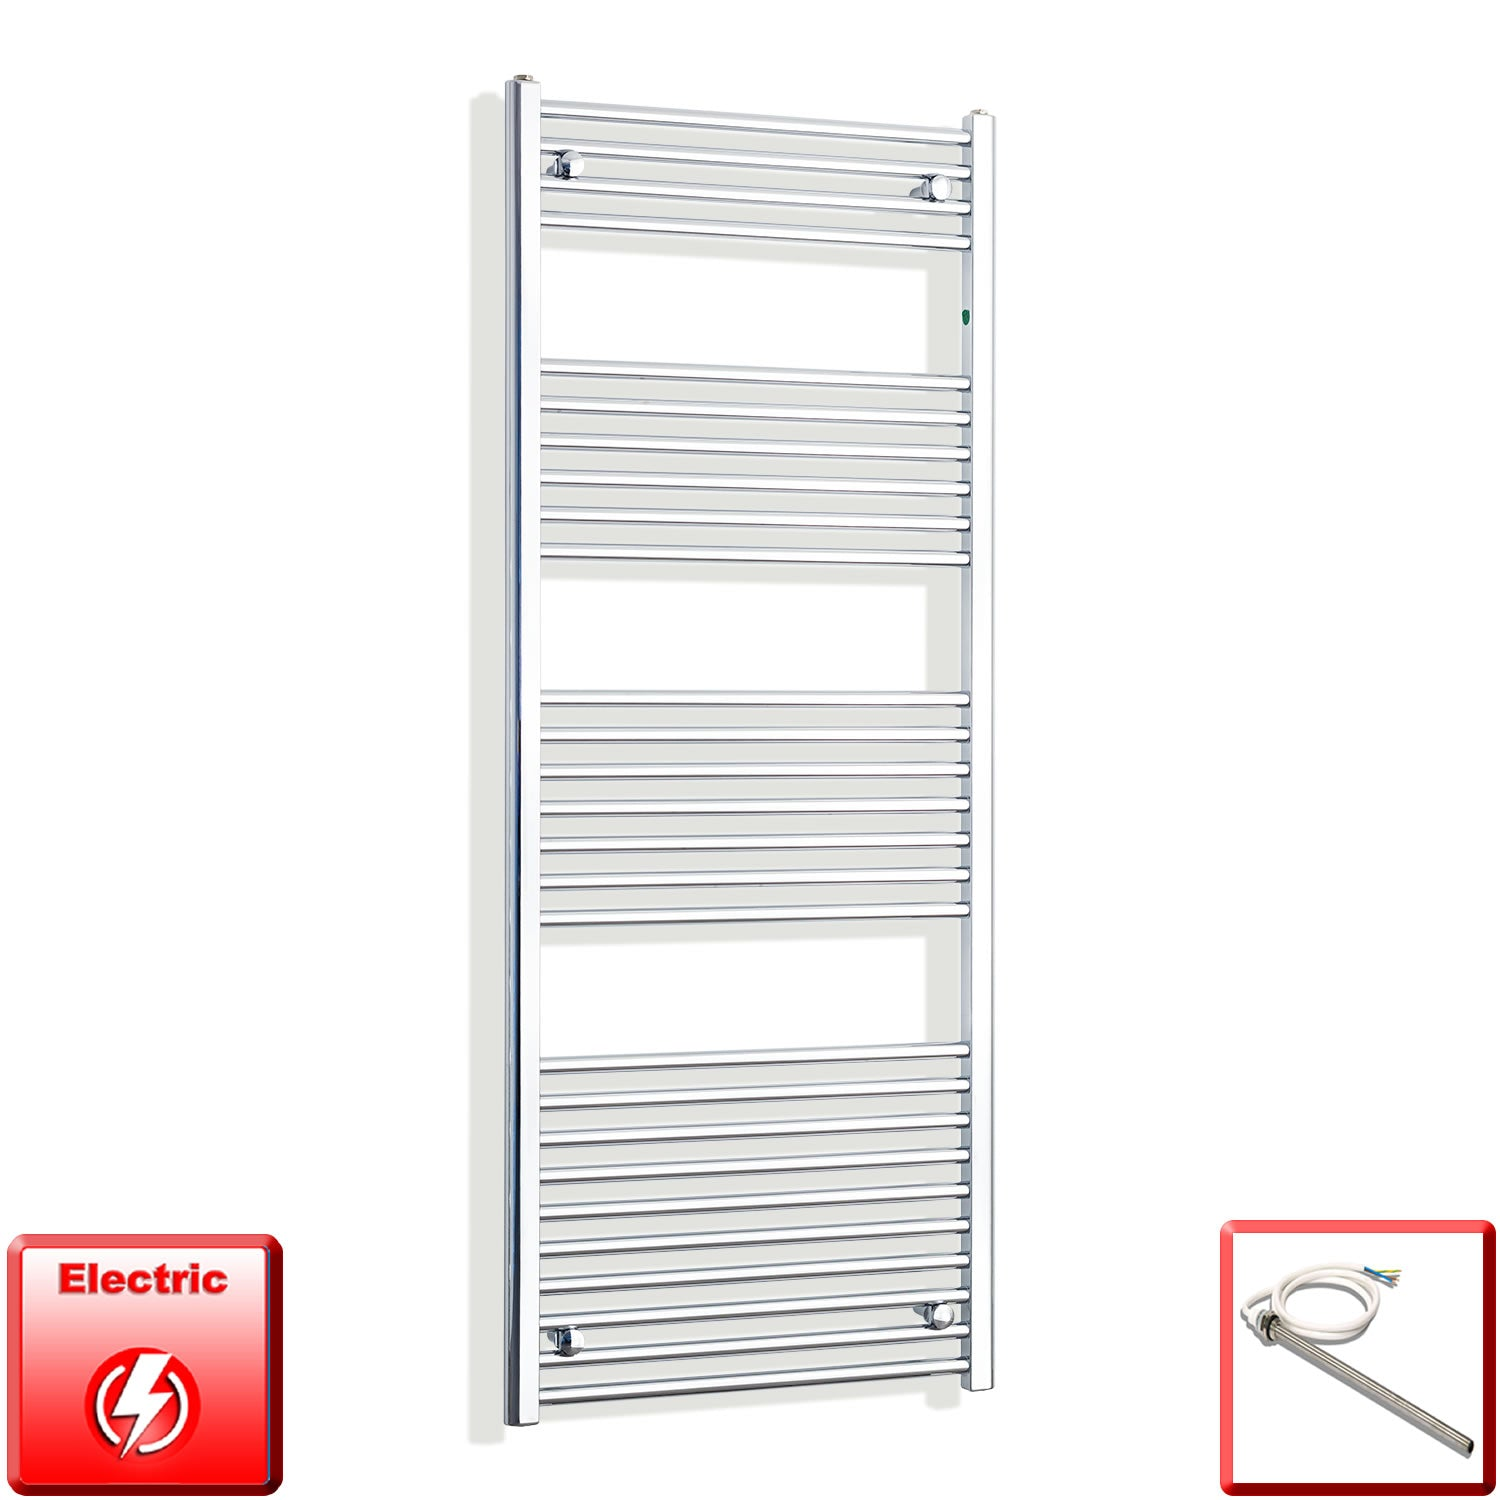 600mm Wide 1600mm High Pre-Filled Chrome Electric Towel Rail Radiator With Single Heat Element